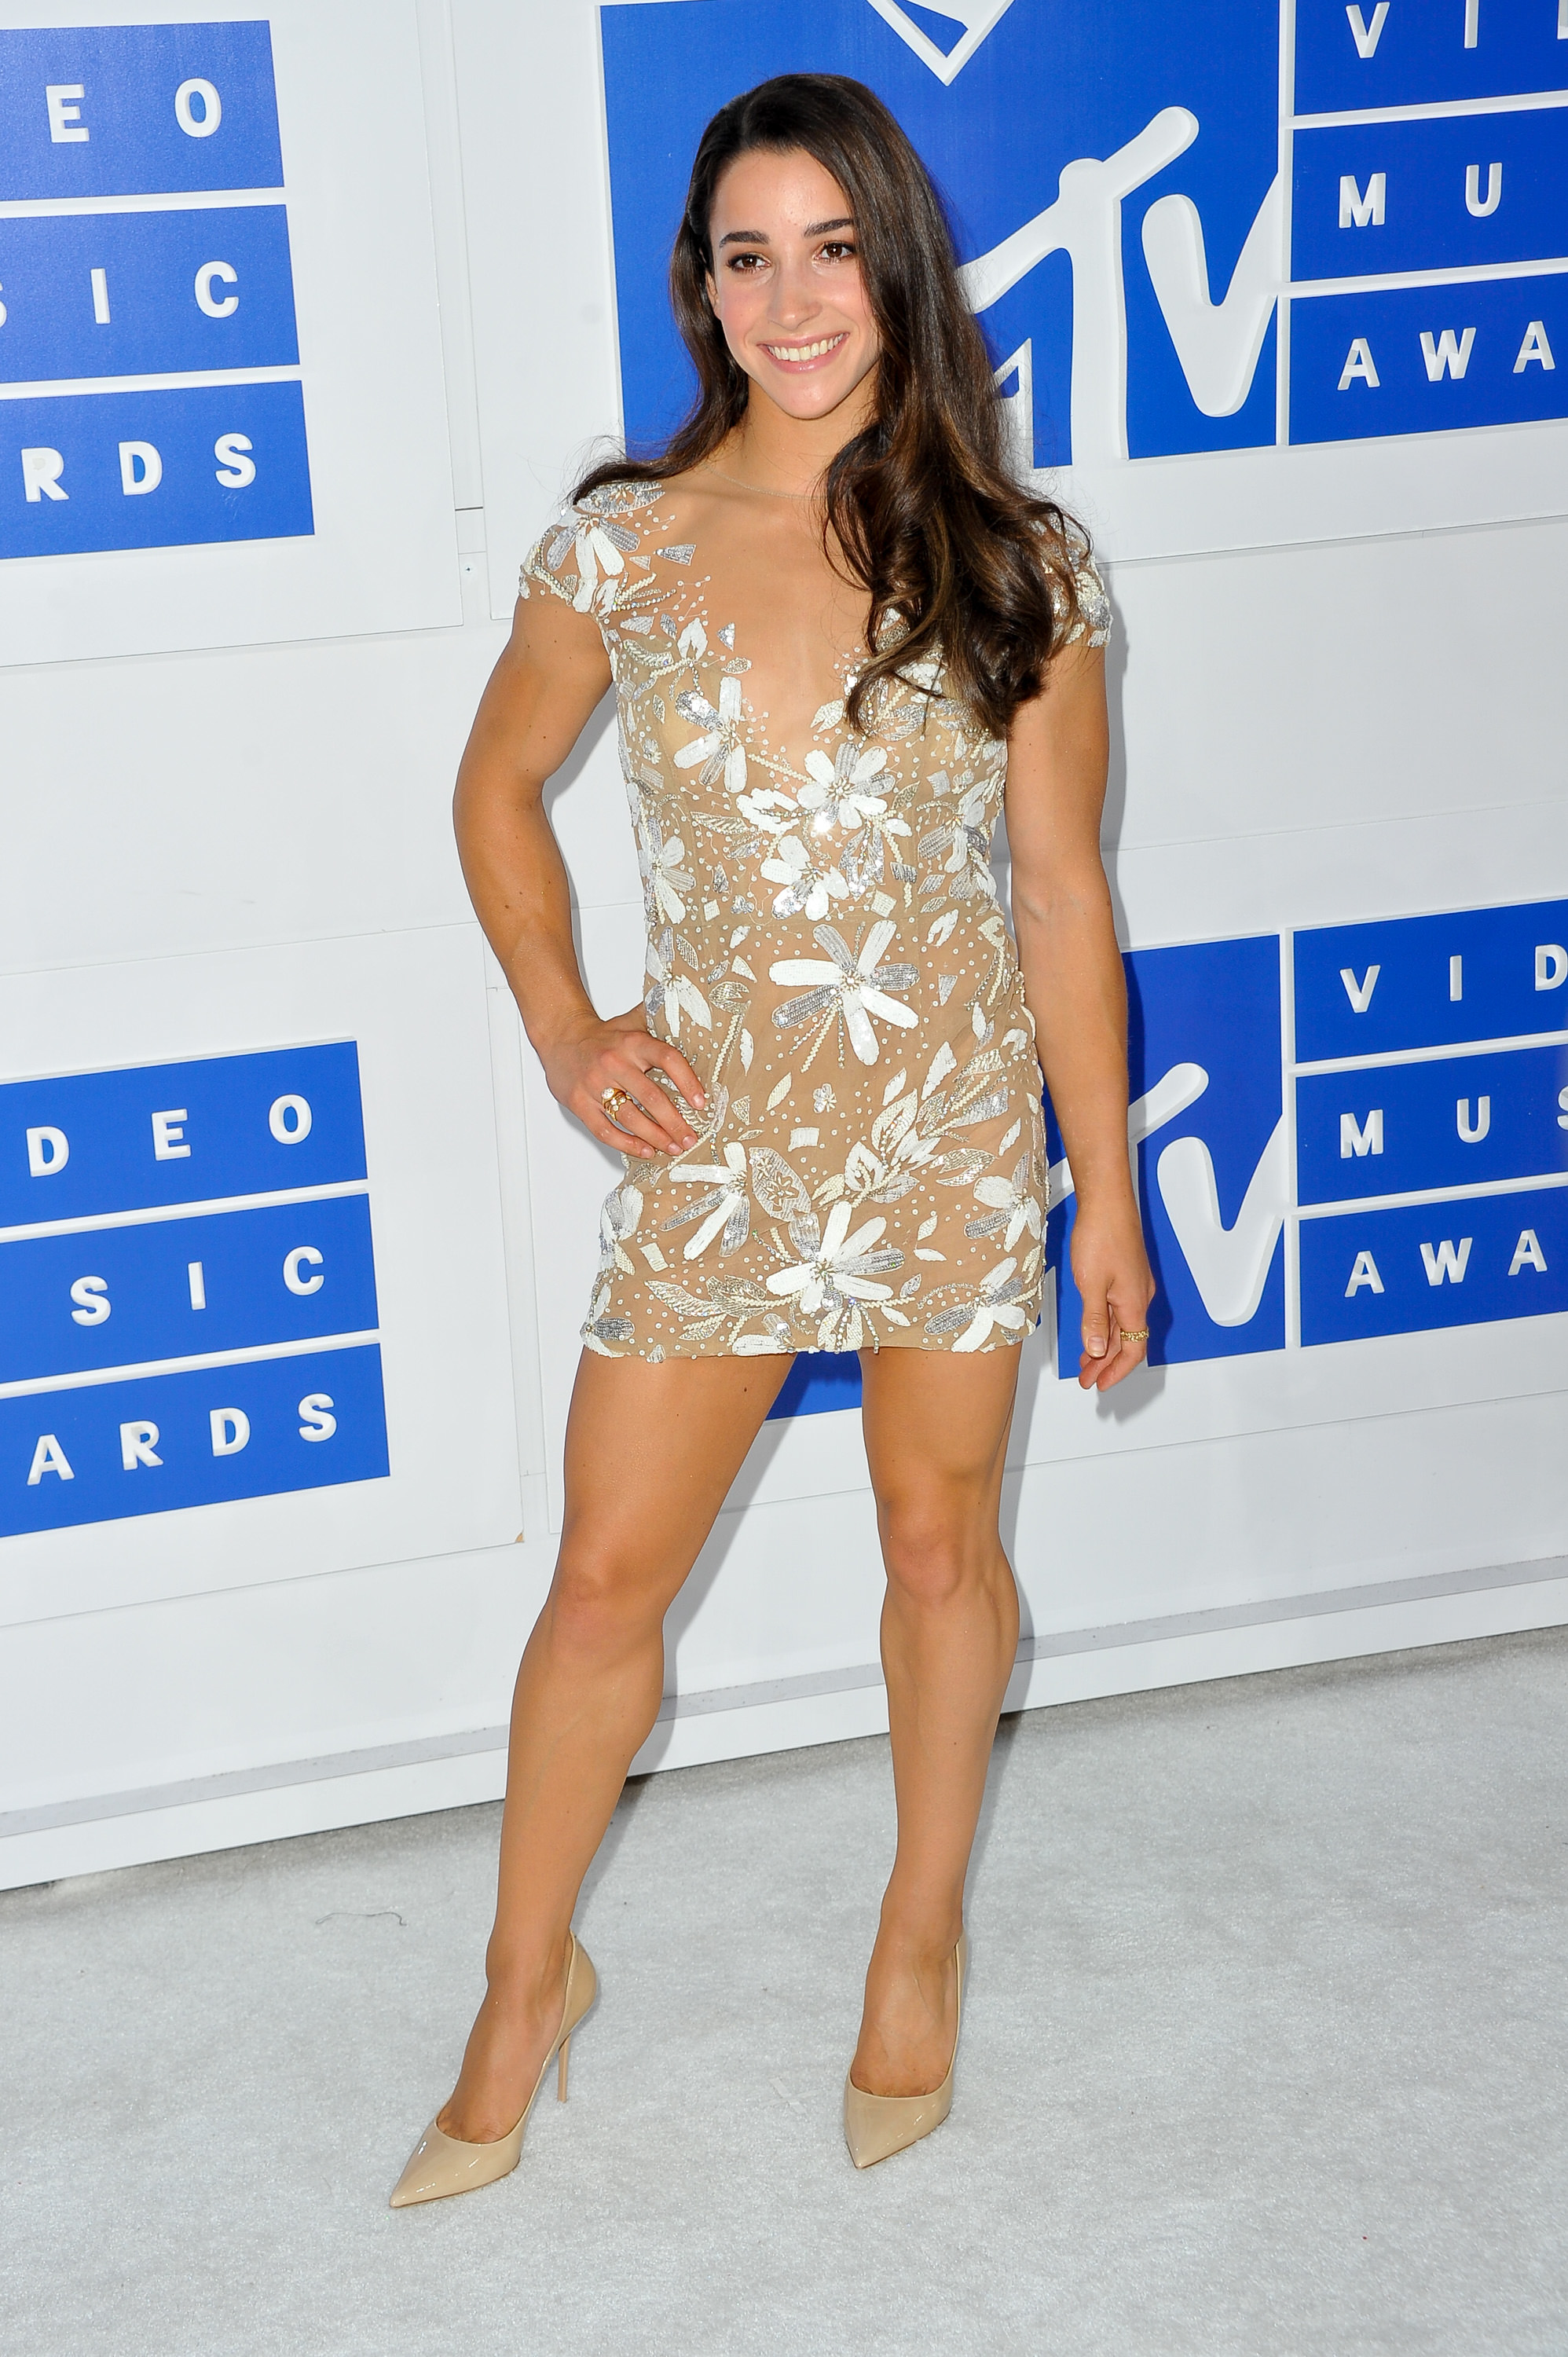 Aly Raisman sexy women